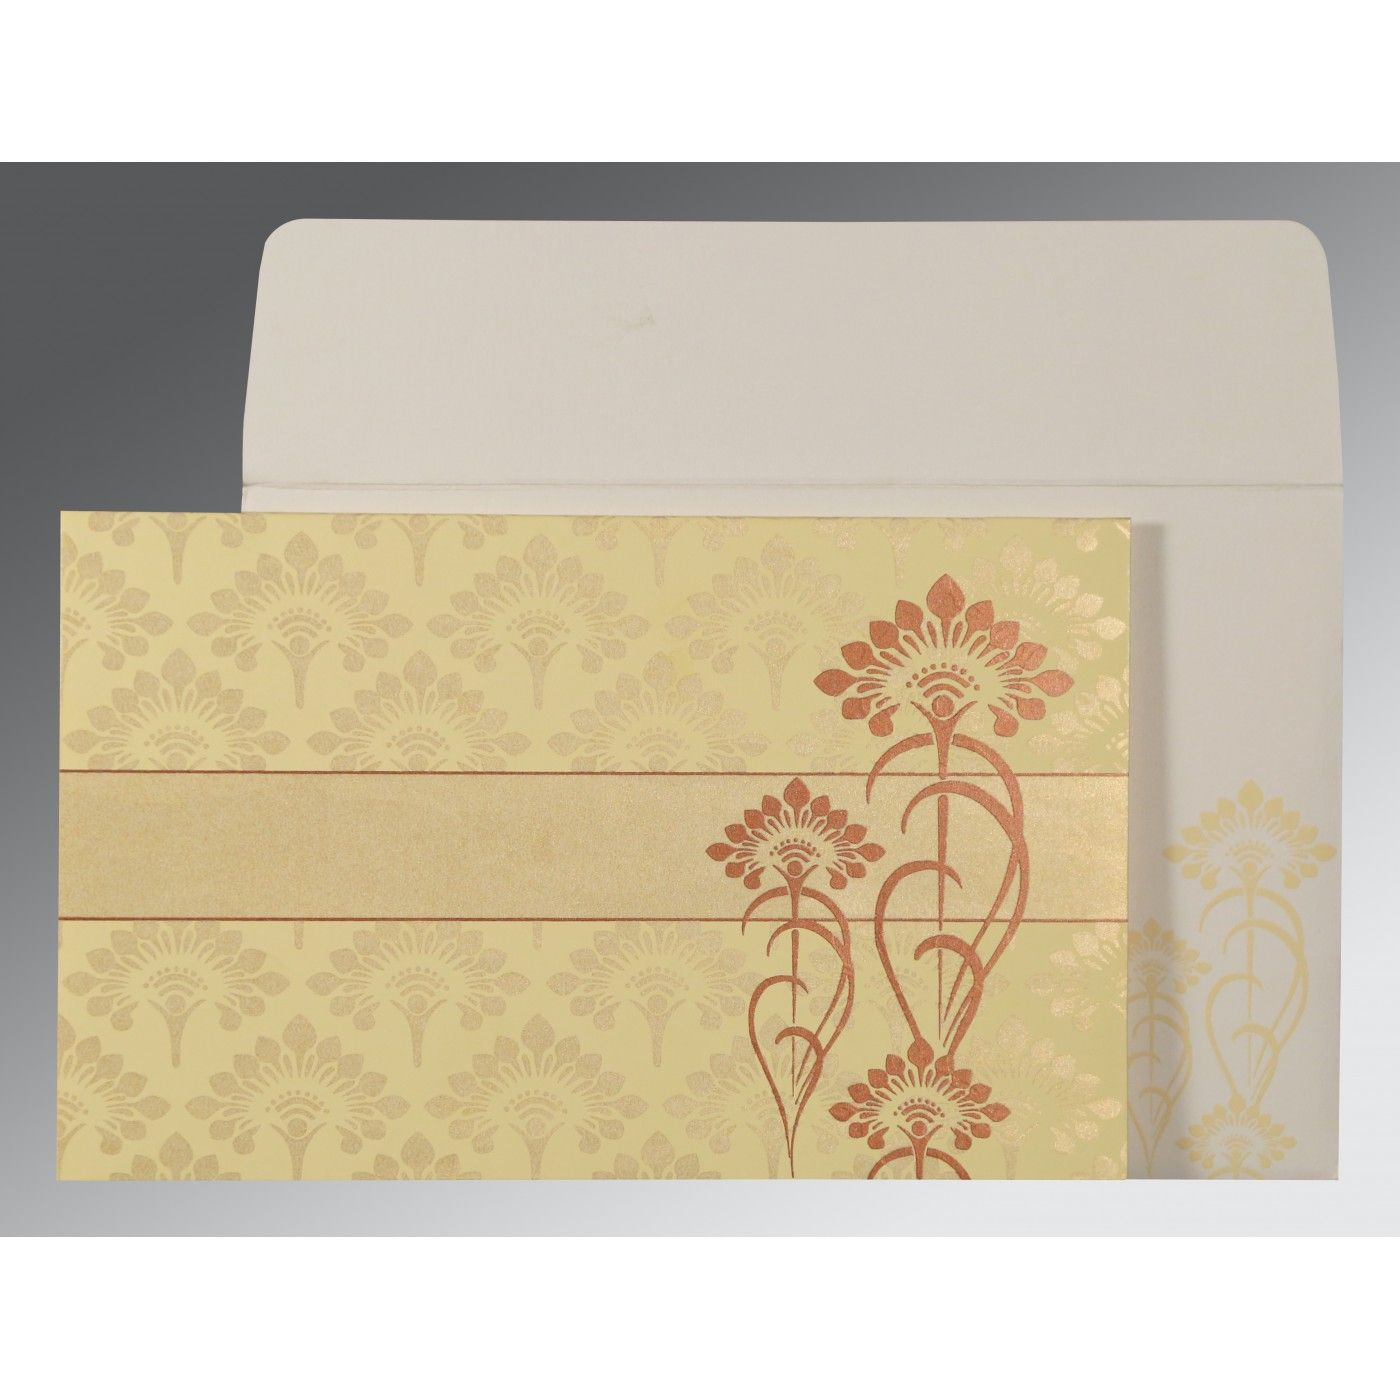 CREAM SHIMMERY SCREEN PRINTED WEDDING CARD : CW-8239I - IndianWeddingCards